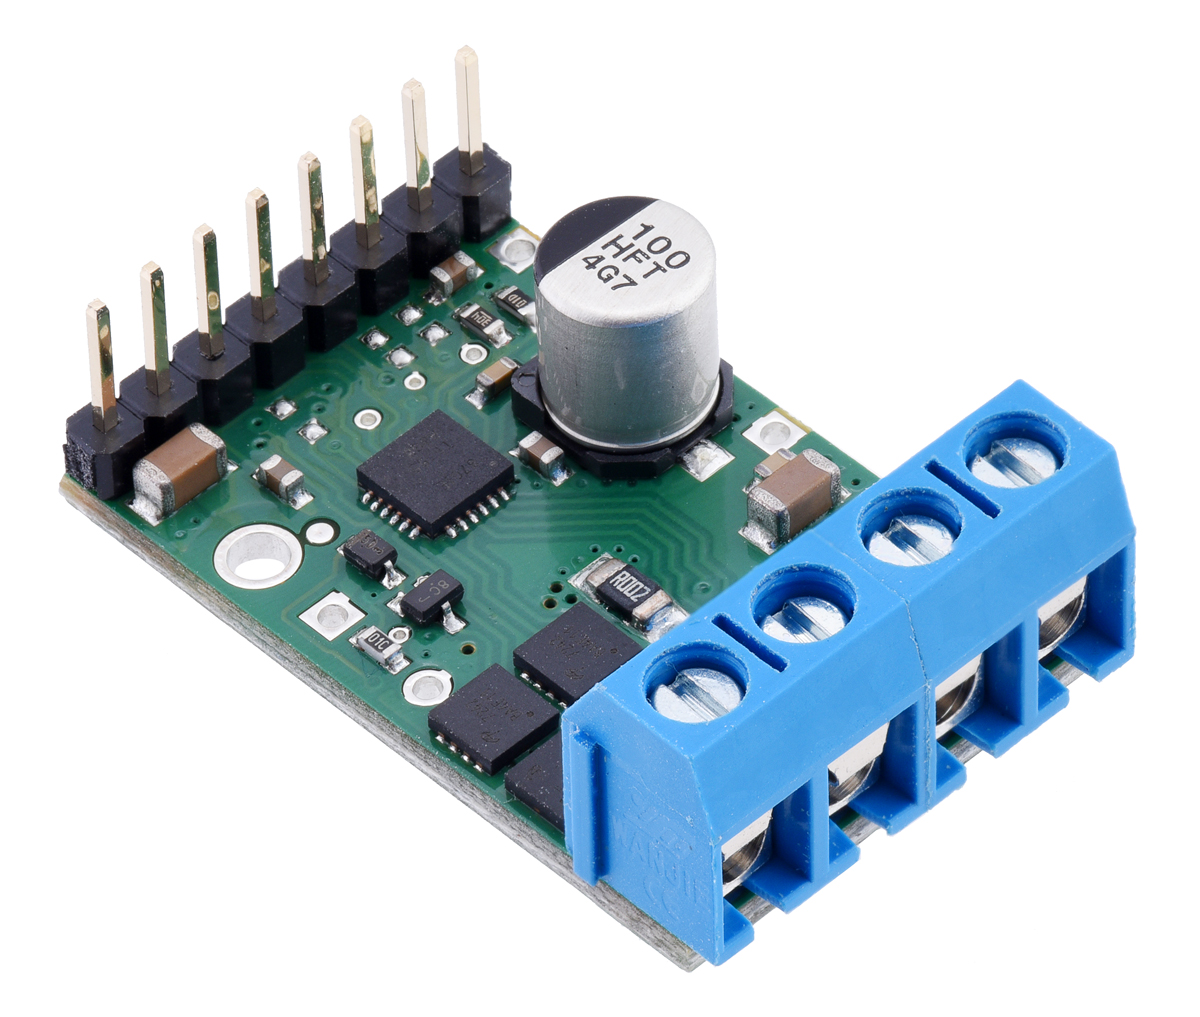 Pololu G2 High Power Motor Driver 24v13 How To Make An Electrical Circuit Board Ehow Uk 18v17 Or Assembled With Headers And Terminal Blocks